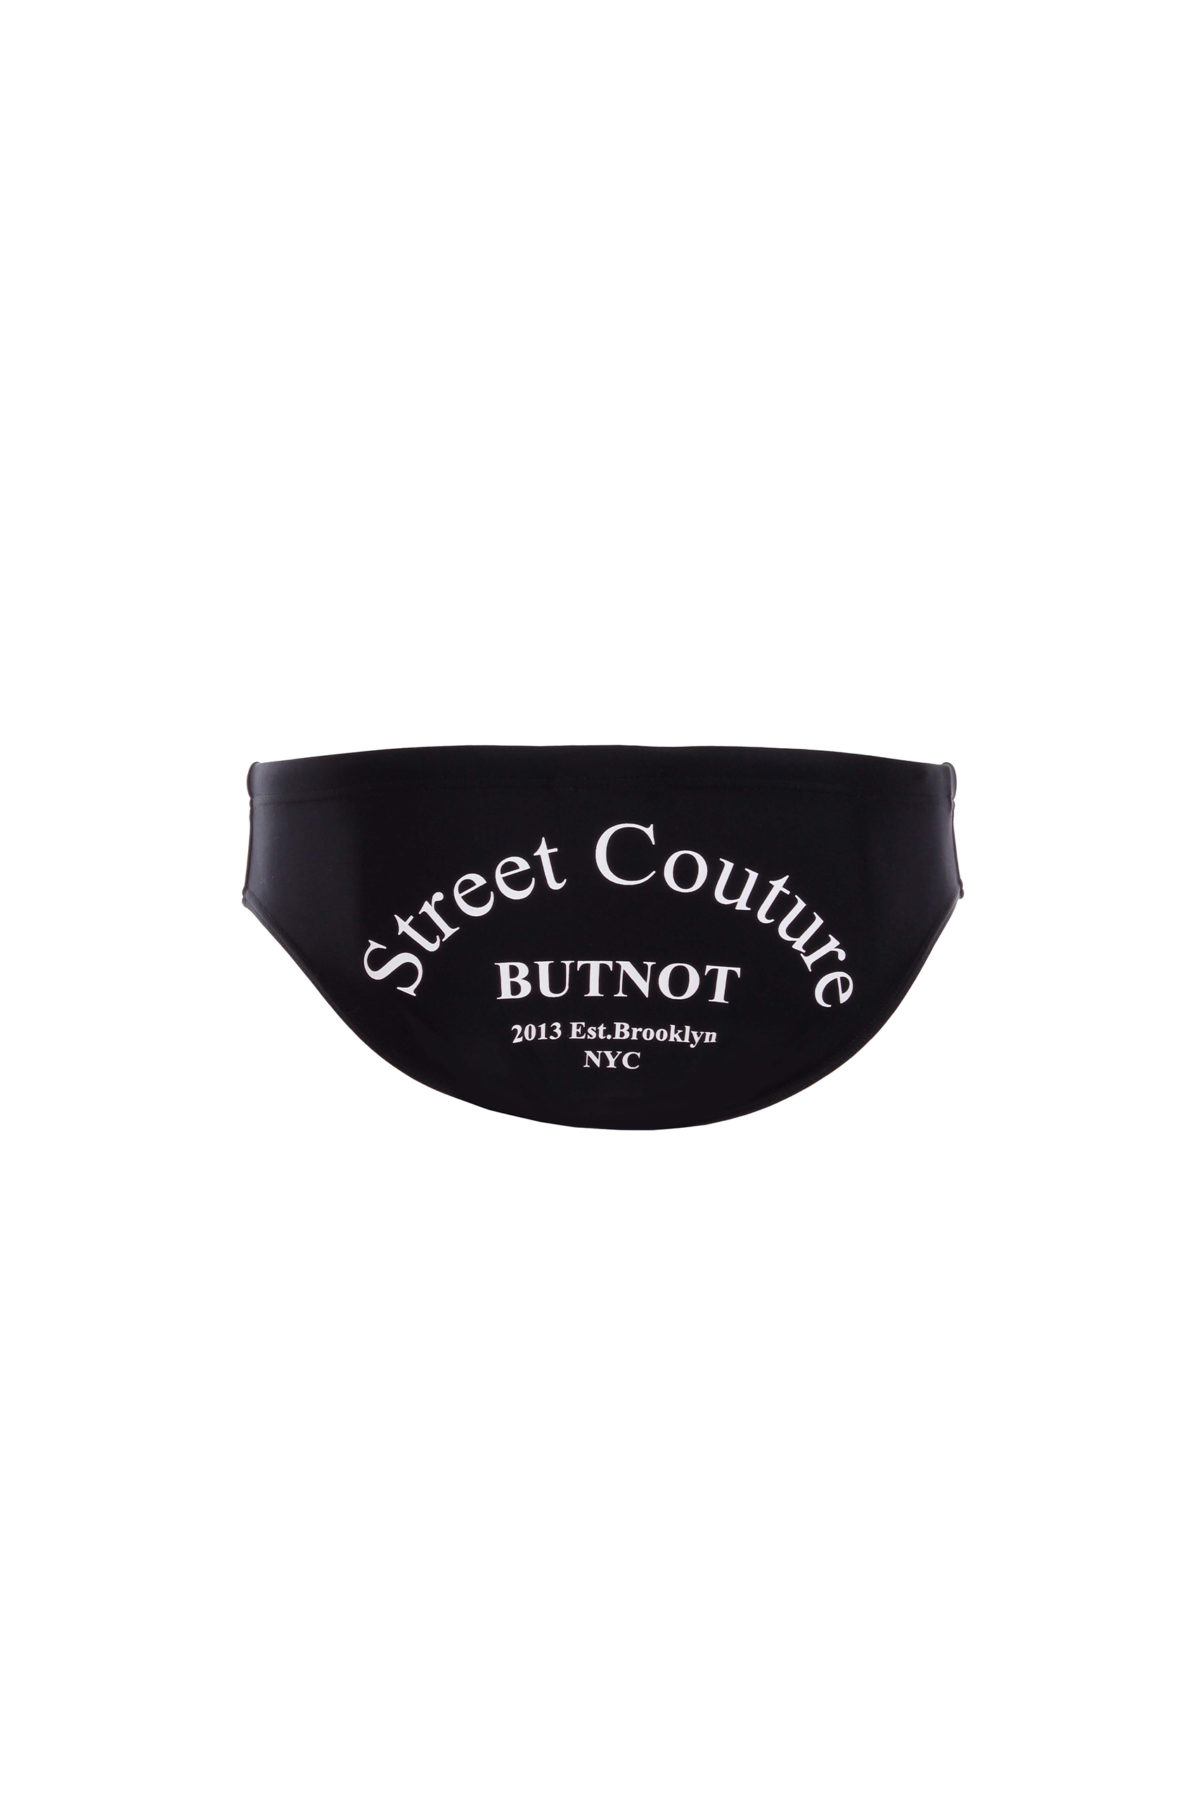 COSTUME SLIP BUTNOT STREET COUTURE